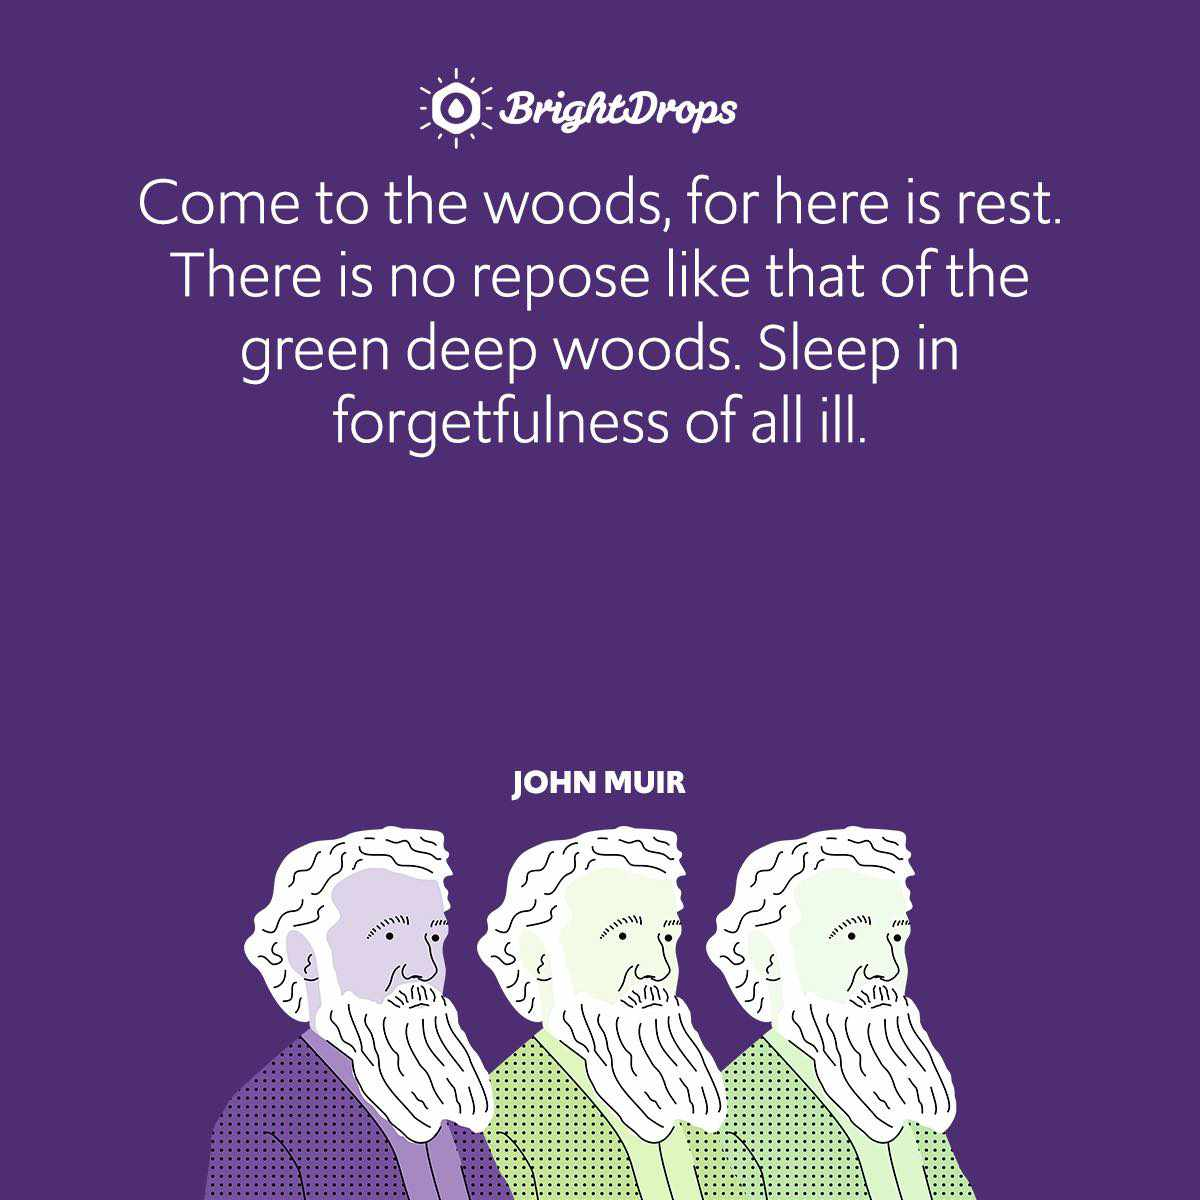 Come to the woods, for here is rest. There is no repose like that of the green deep woods. Sleep in forgetfulness of all ill.